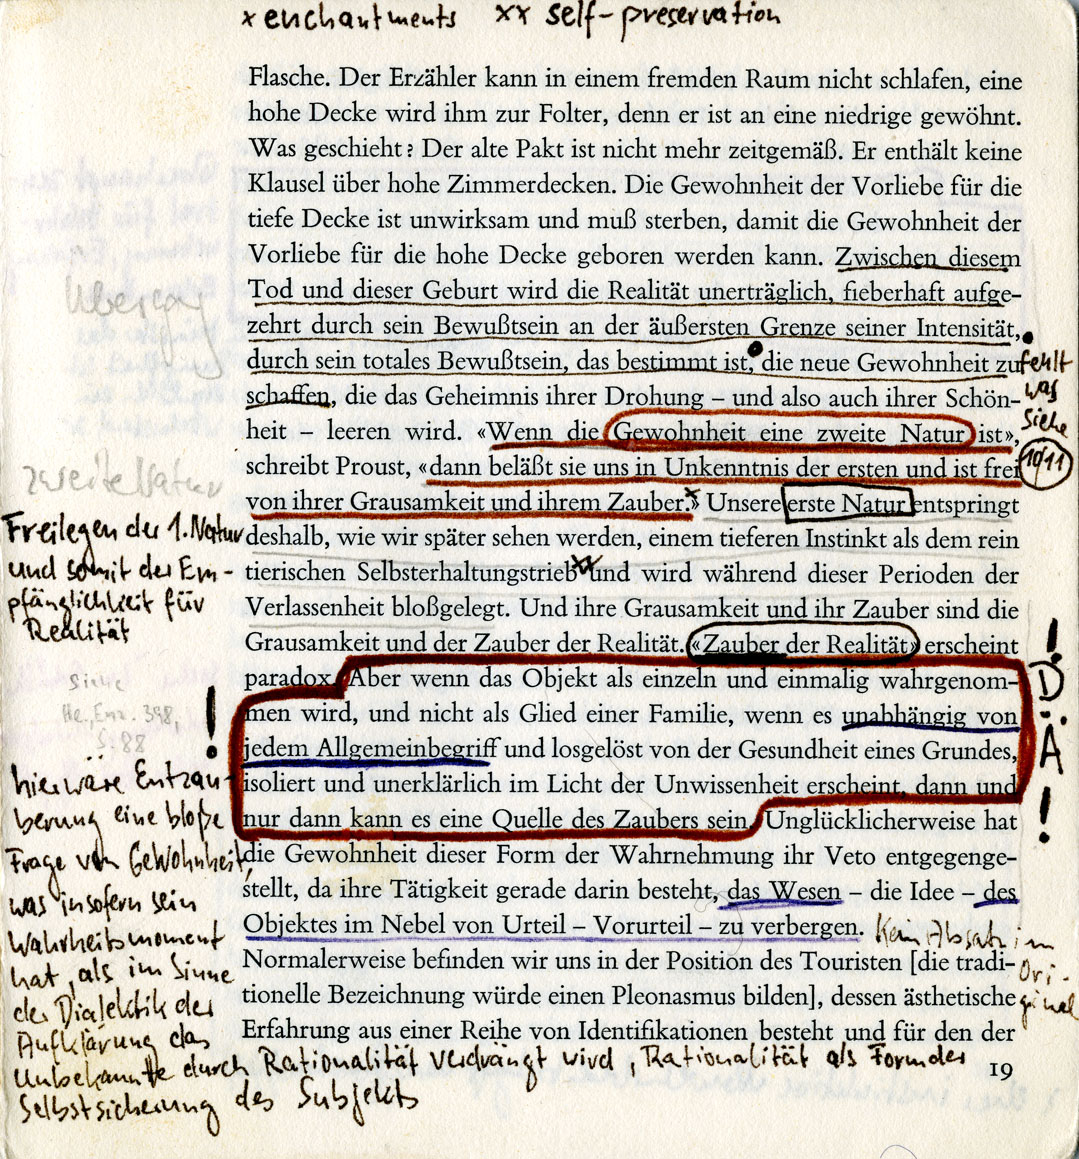 Samuel beckett essay on proust